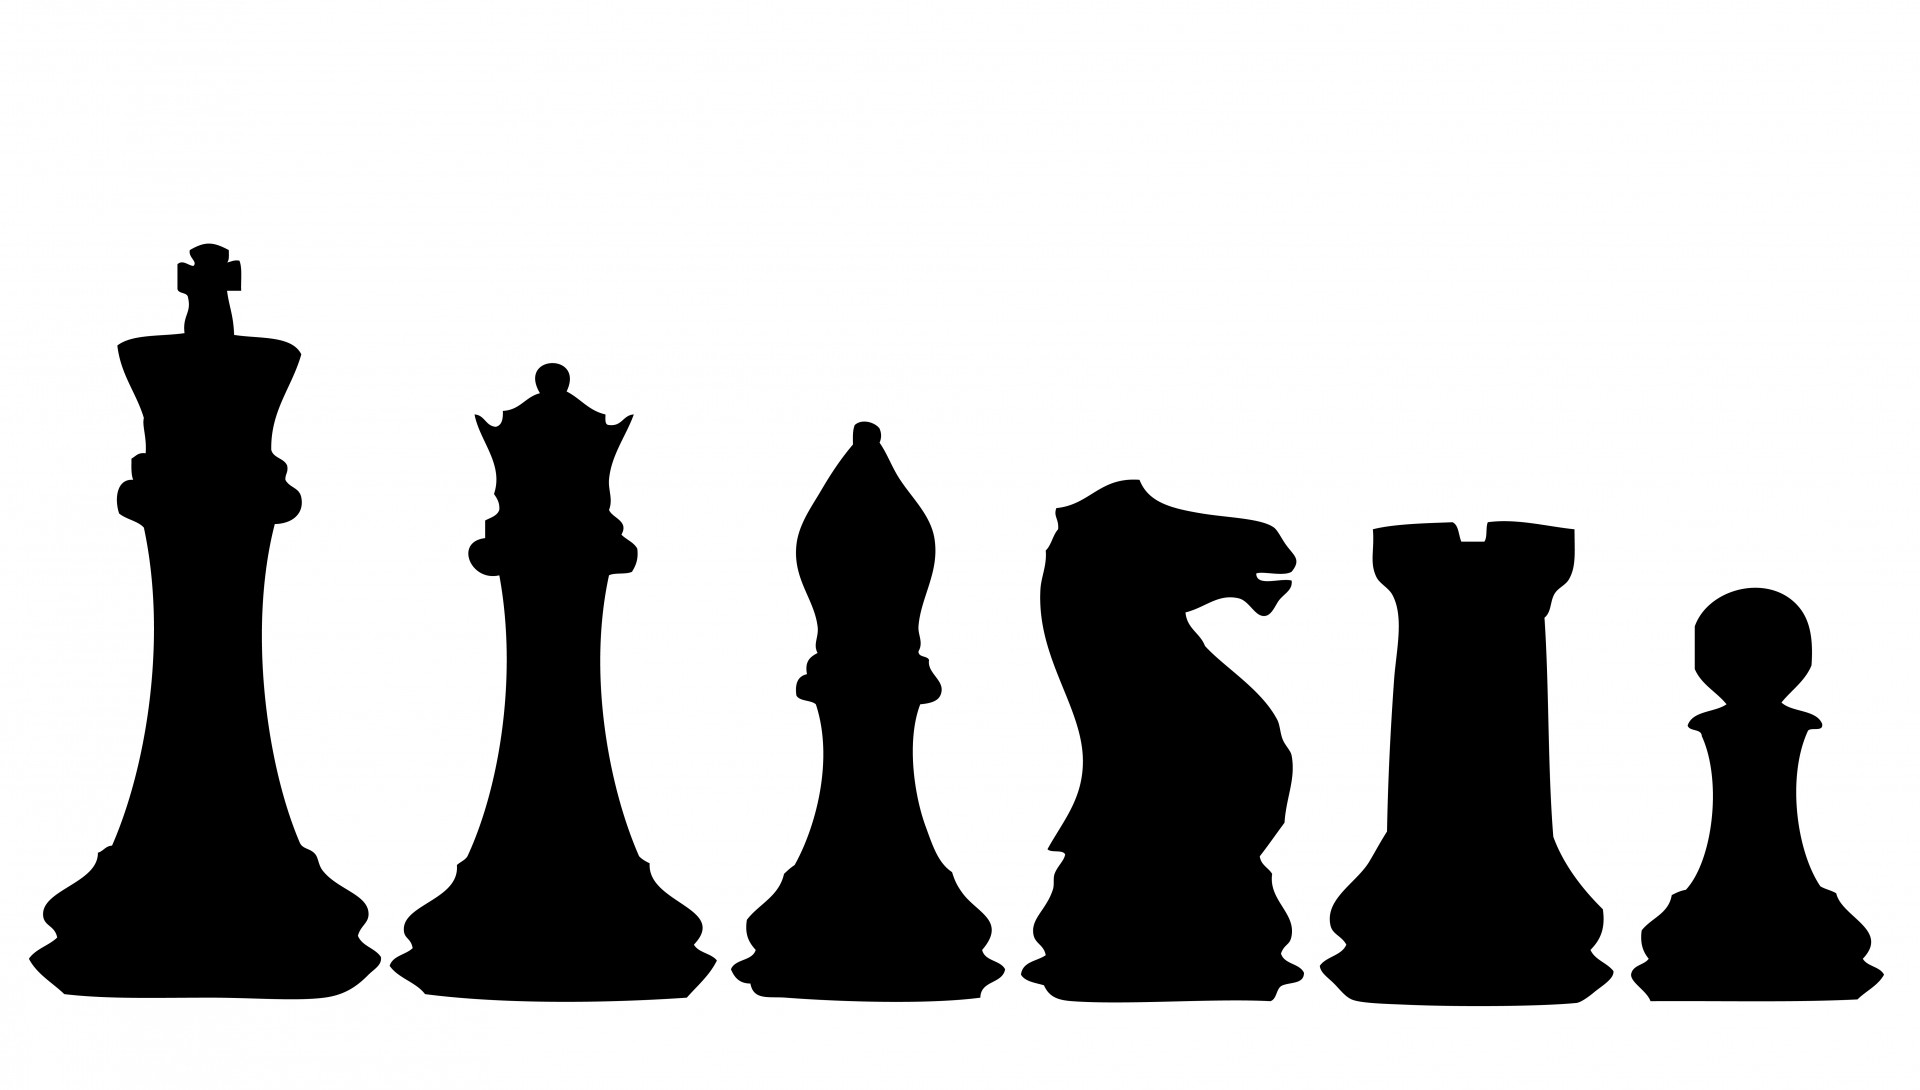 C:\Documents and Settings\User\Рабочий стол\chess-pieces-clipart.jpg